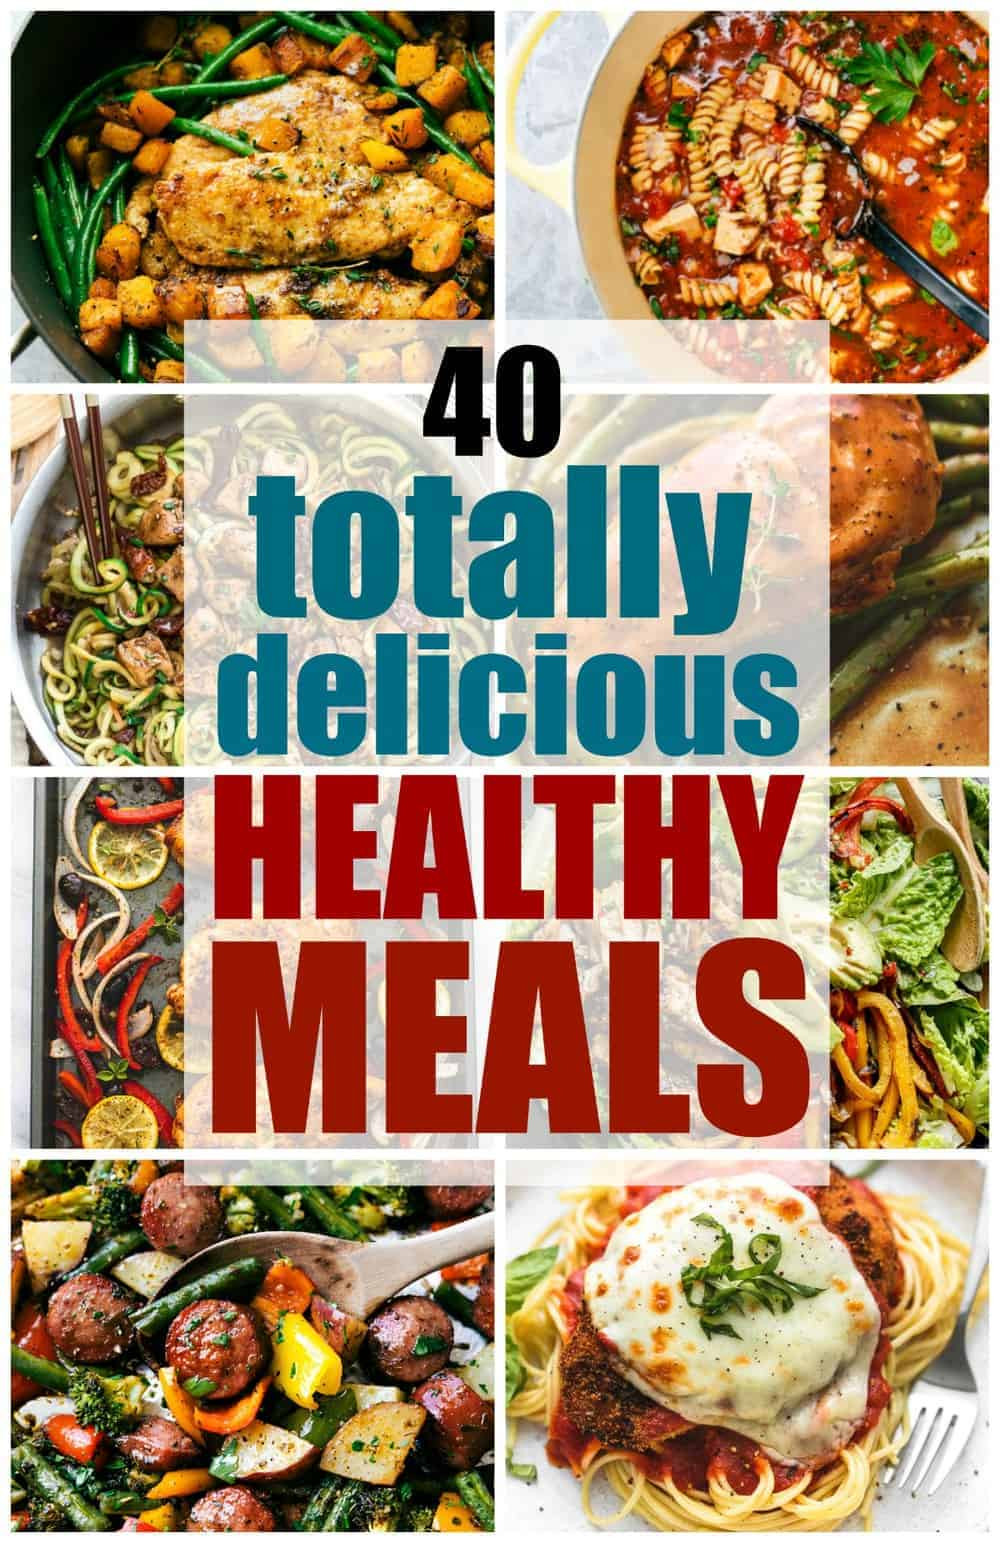 Delicious Healthy Dinners  40 Totally Delicious Healthy Meals